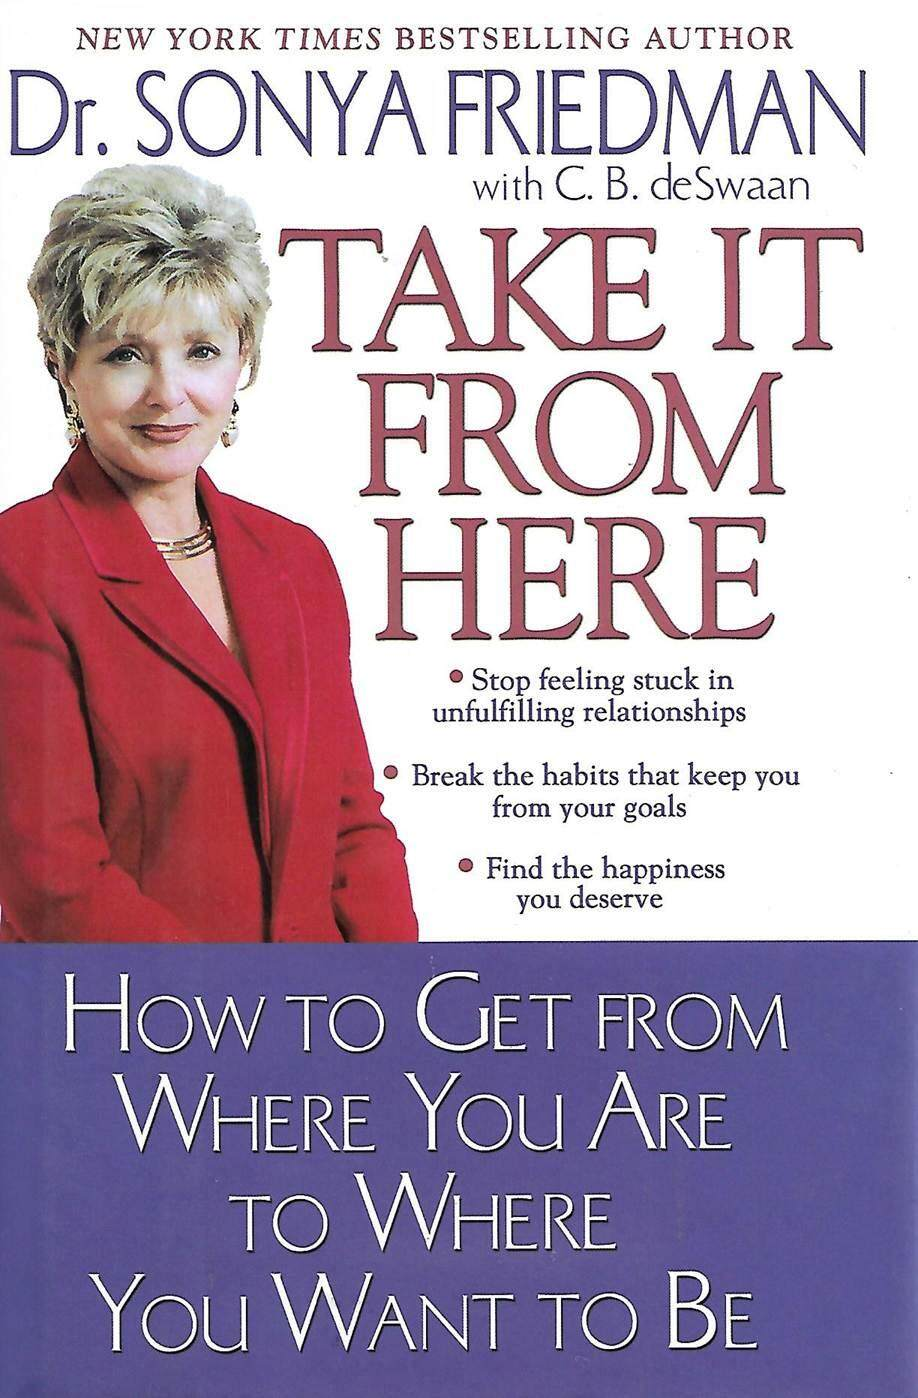 Take It From Here: How to Get from Where You Are to Where You Want to Be